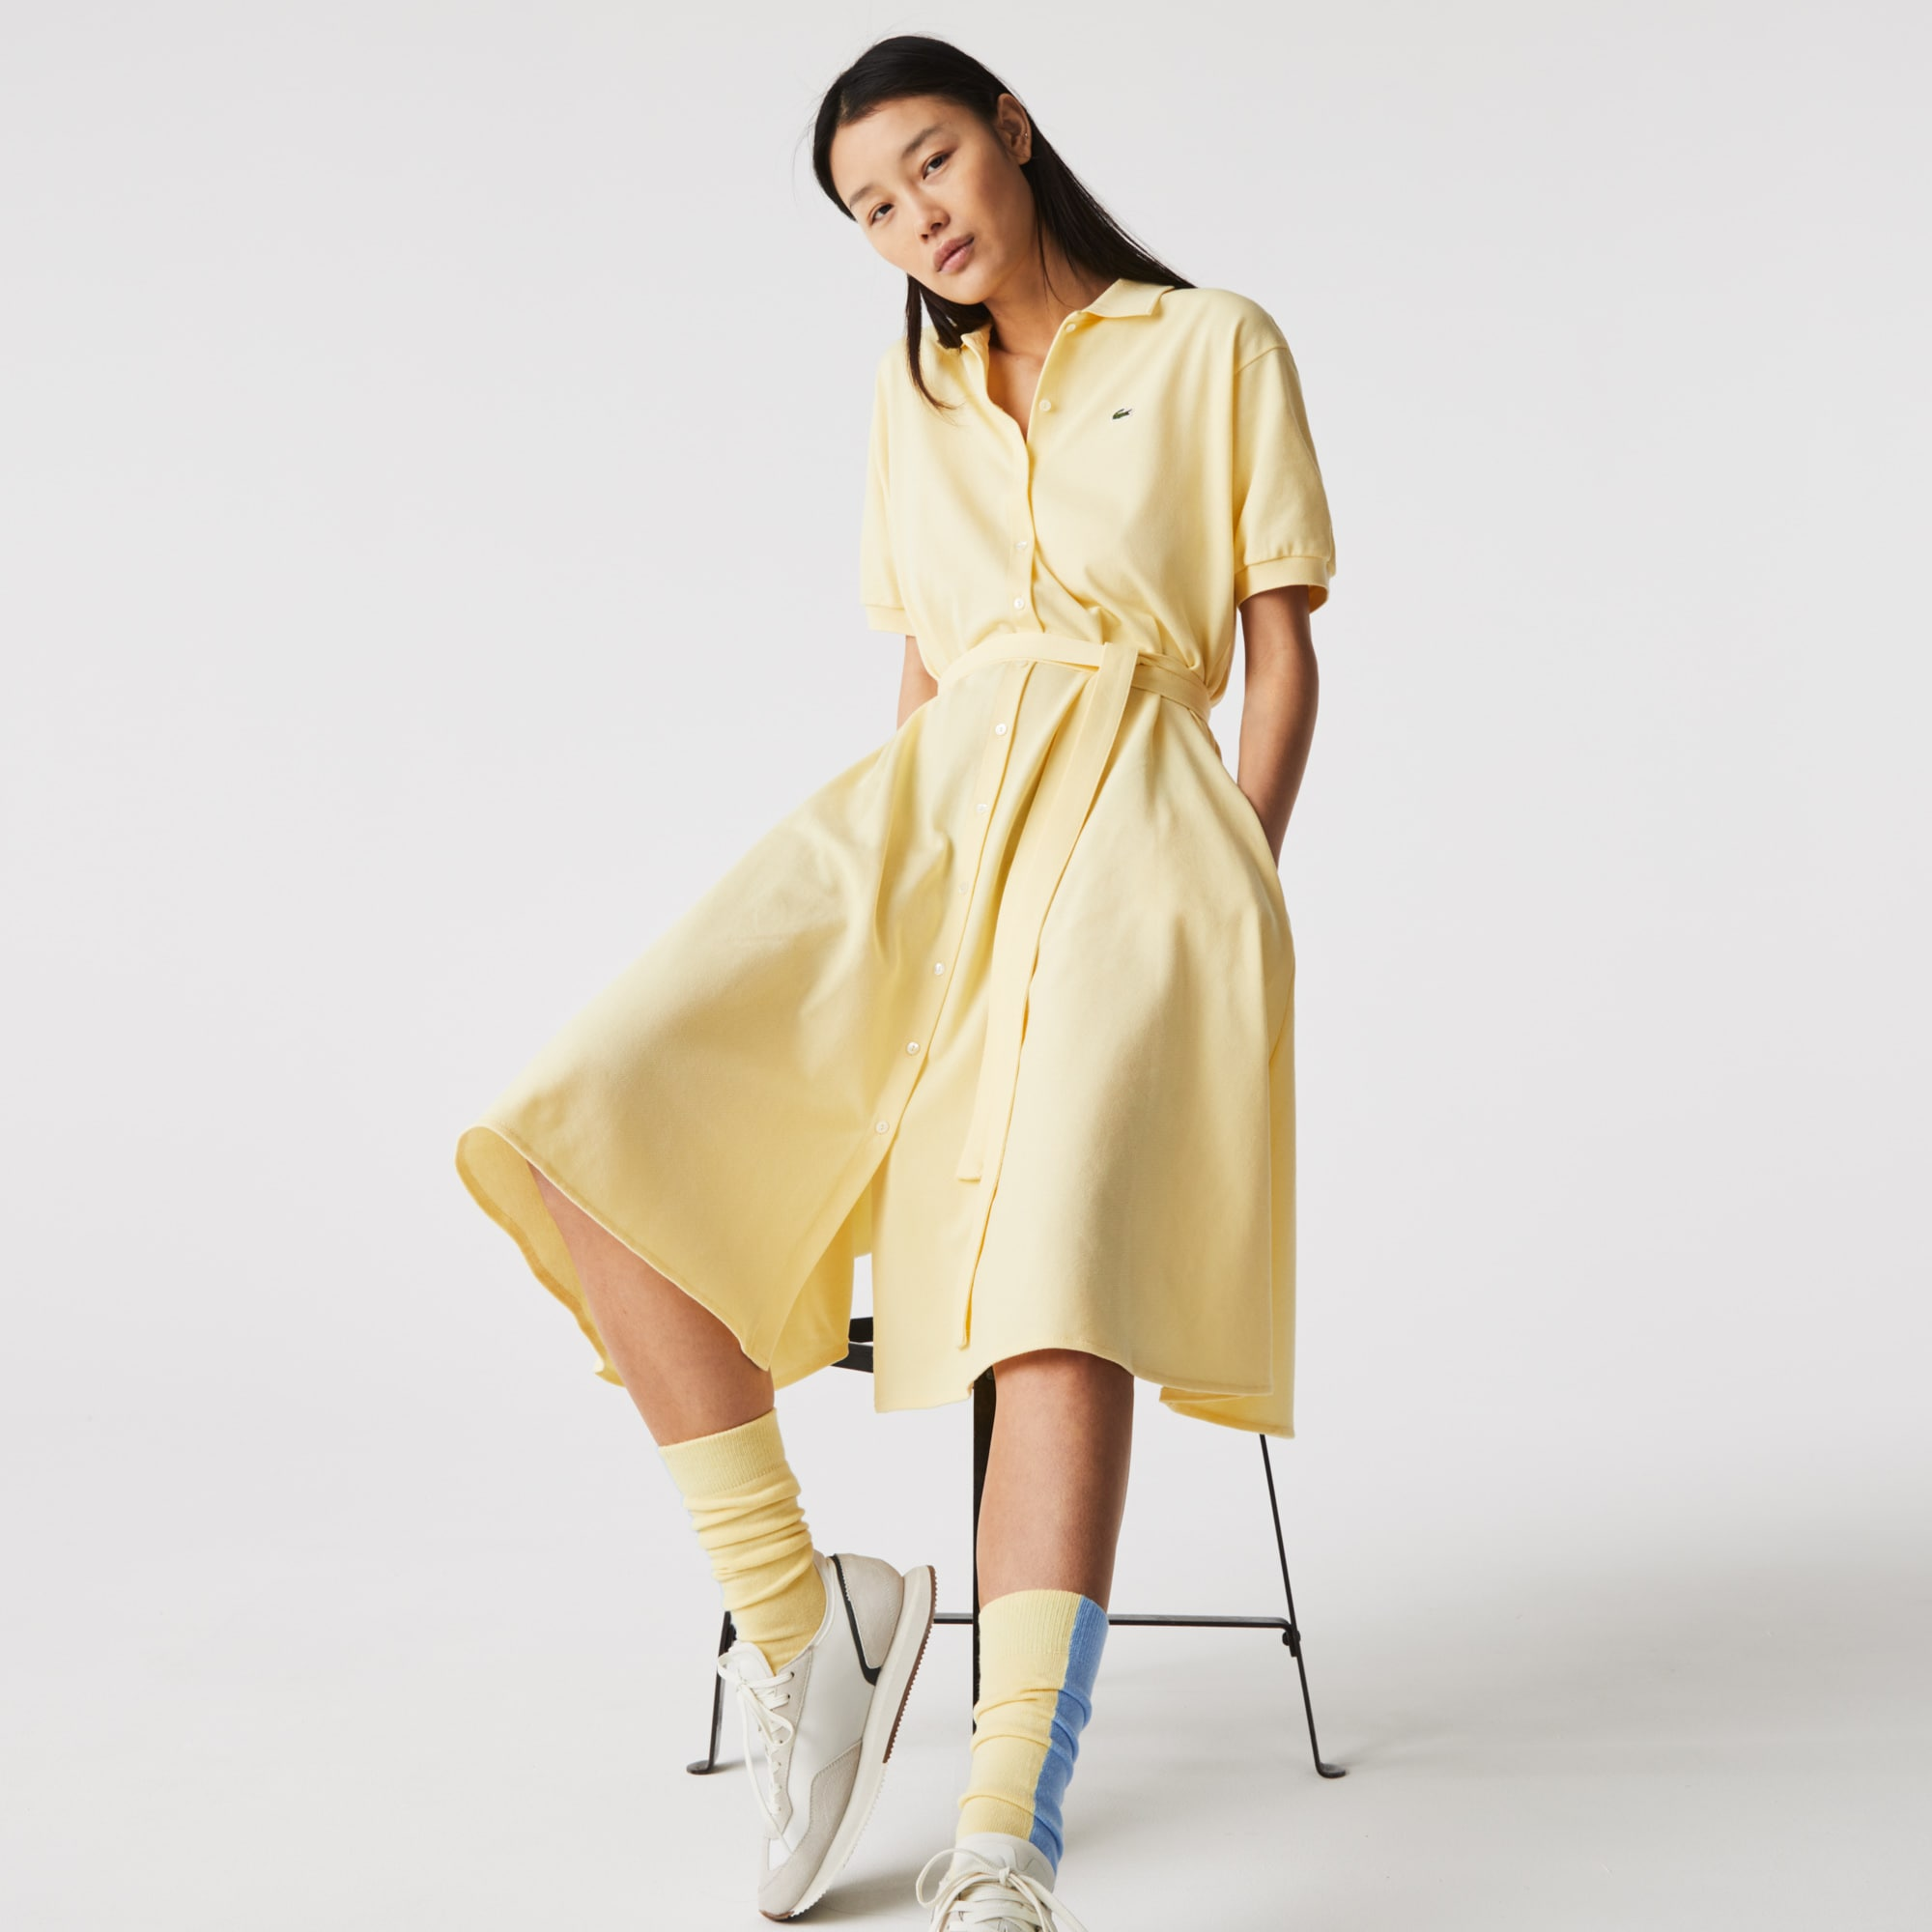 Lacoste Womens Cotton Pique Belted Polo Dress